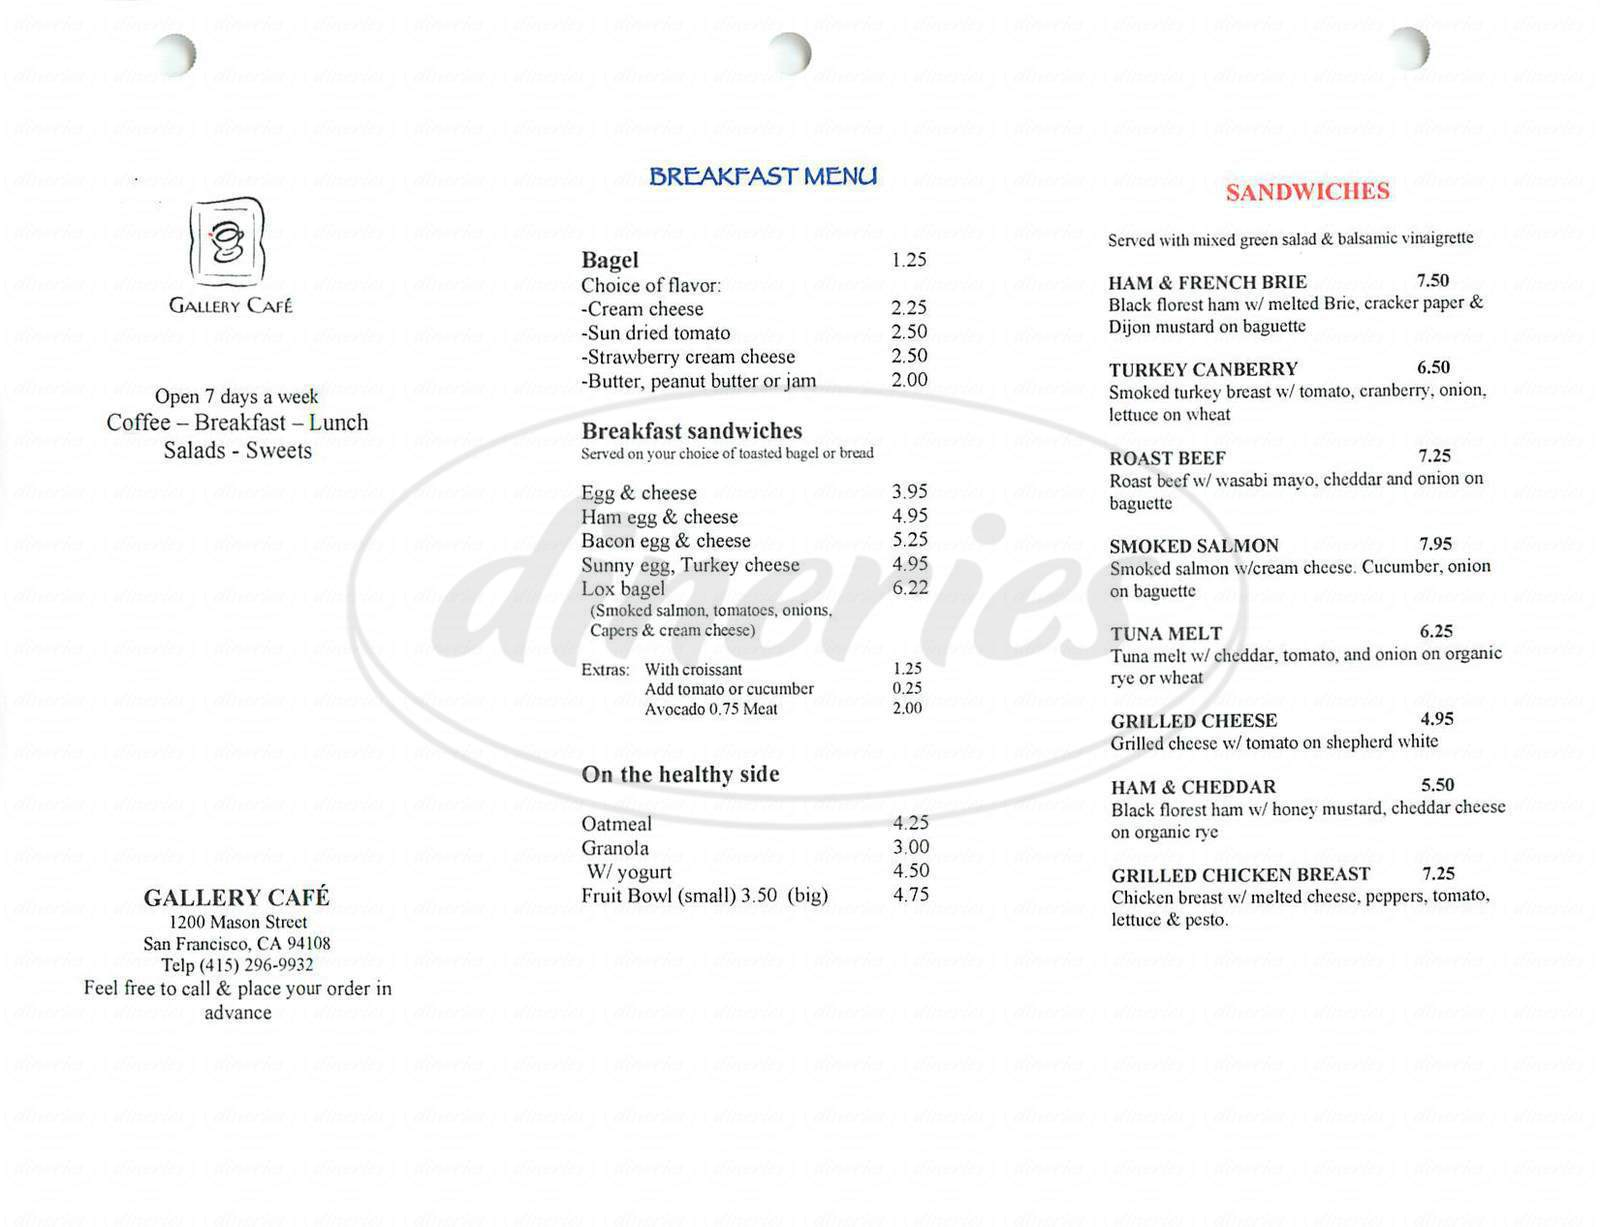 menu for Gallery Cafe